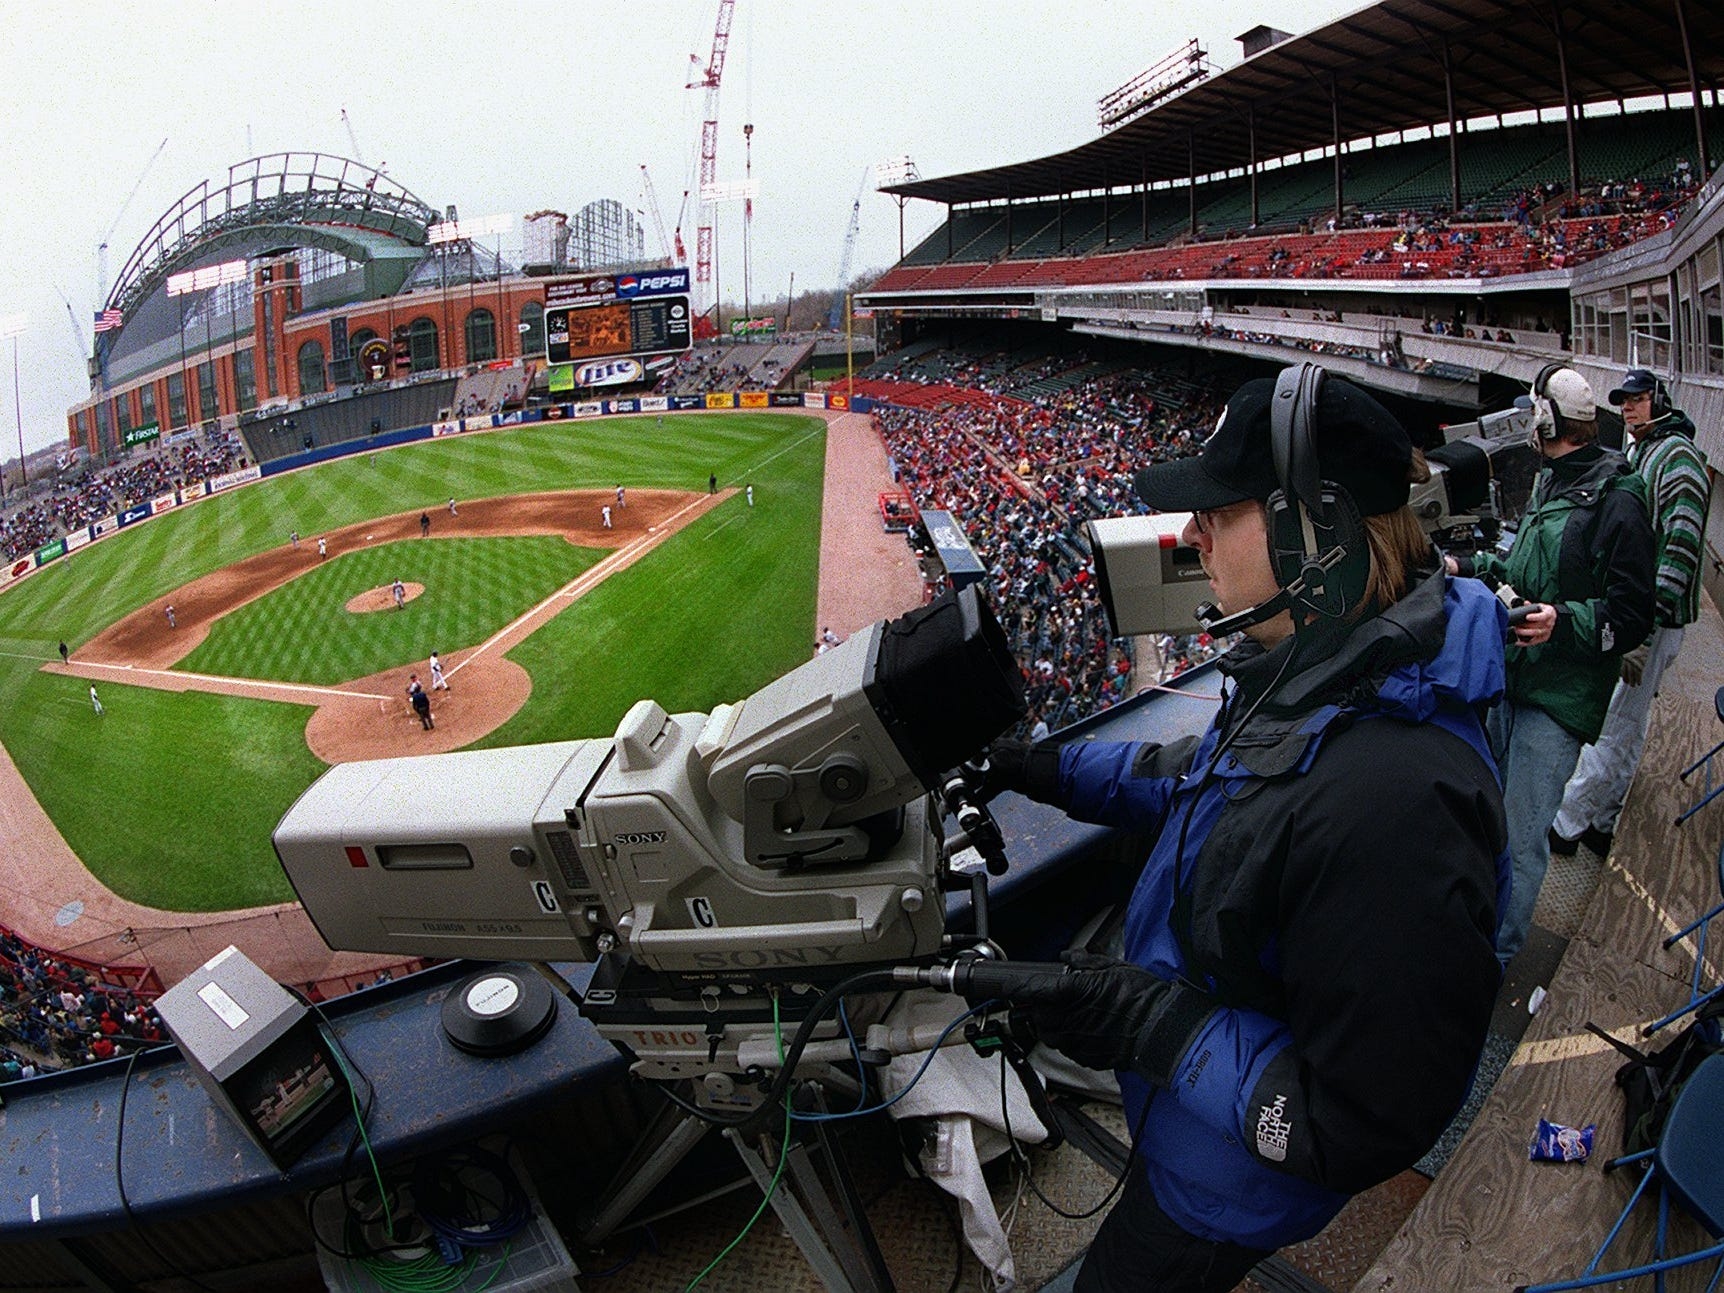 Freelance camera operator Andy Stieber of Milwaukee covers the Brewers-Braves game Saturday, April 15, 2000, at County Stadium in Milwaukee. Stieber had been hired for the day to cover the game for Atlanta-based superstation TBS, home of Atlanta Braves baseball.